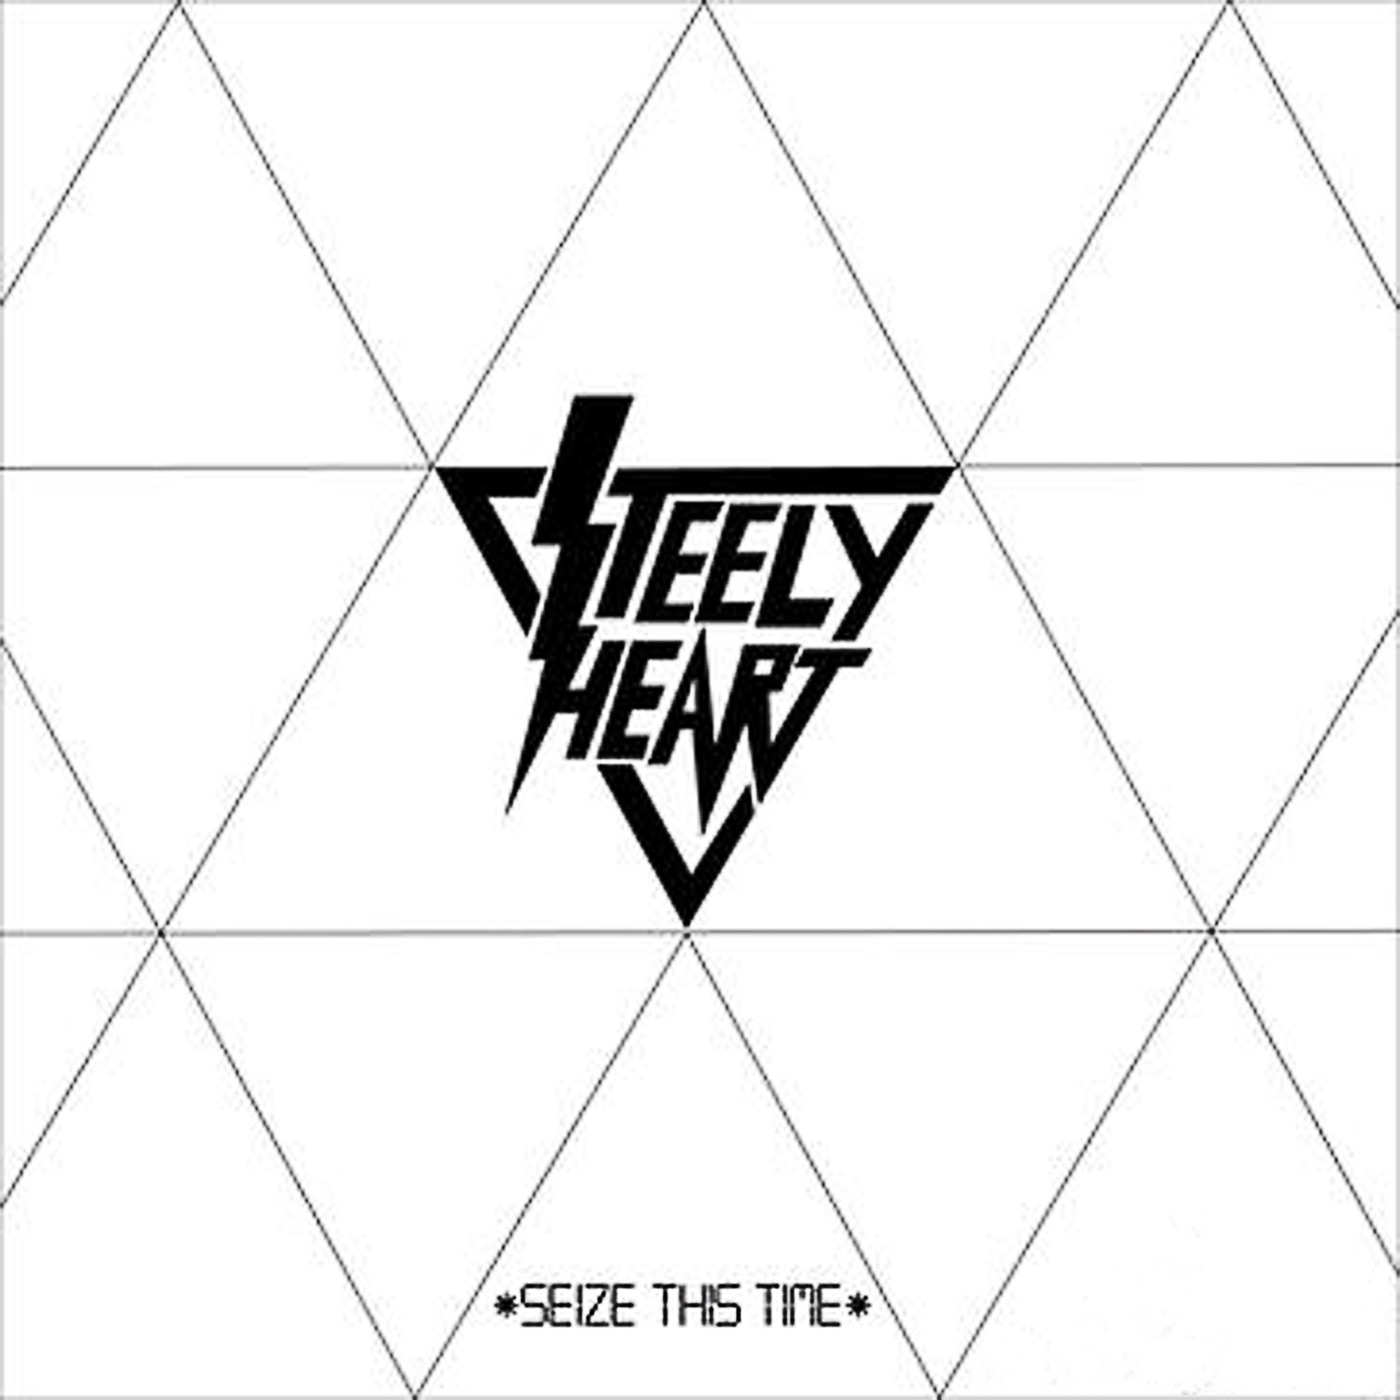 Steely Heart - Seize This Time